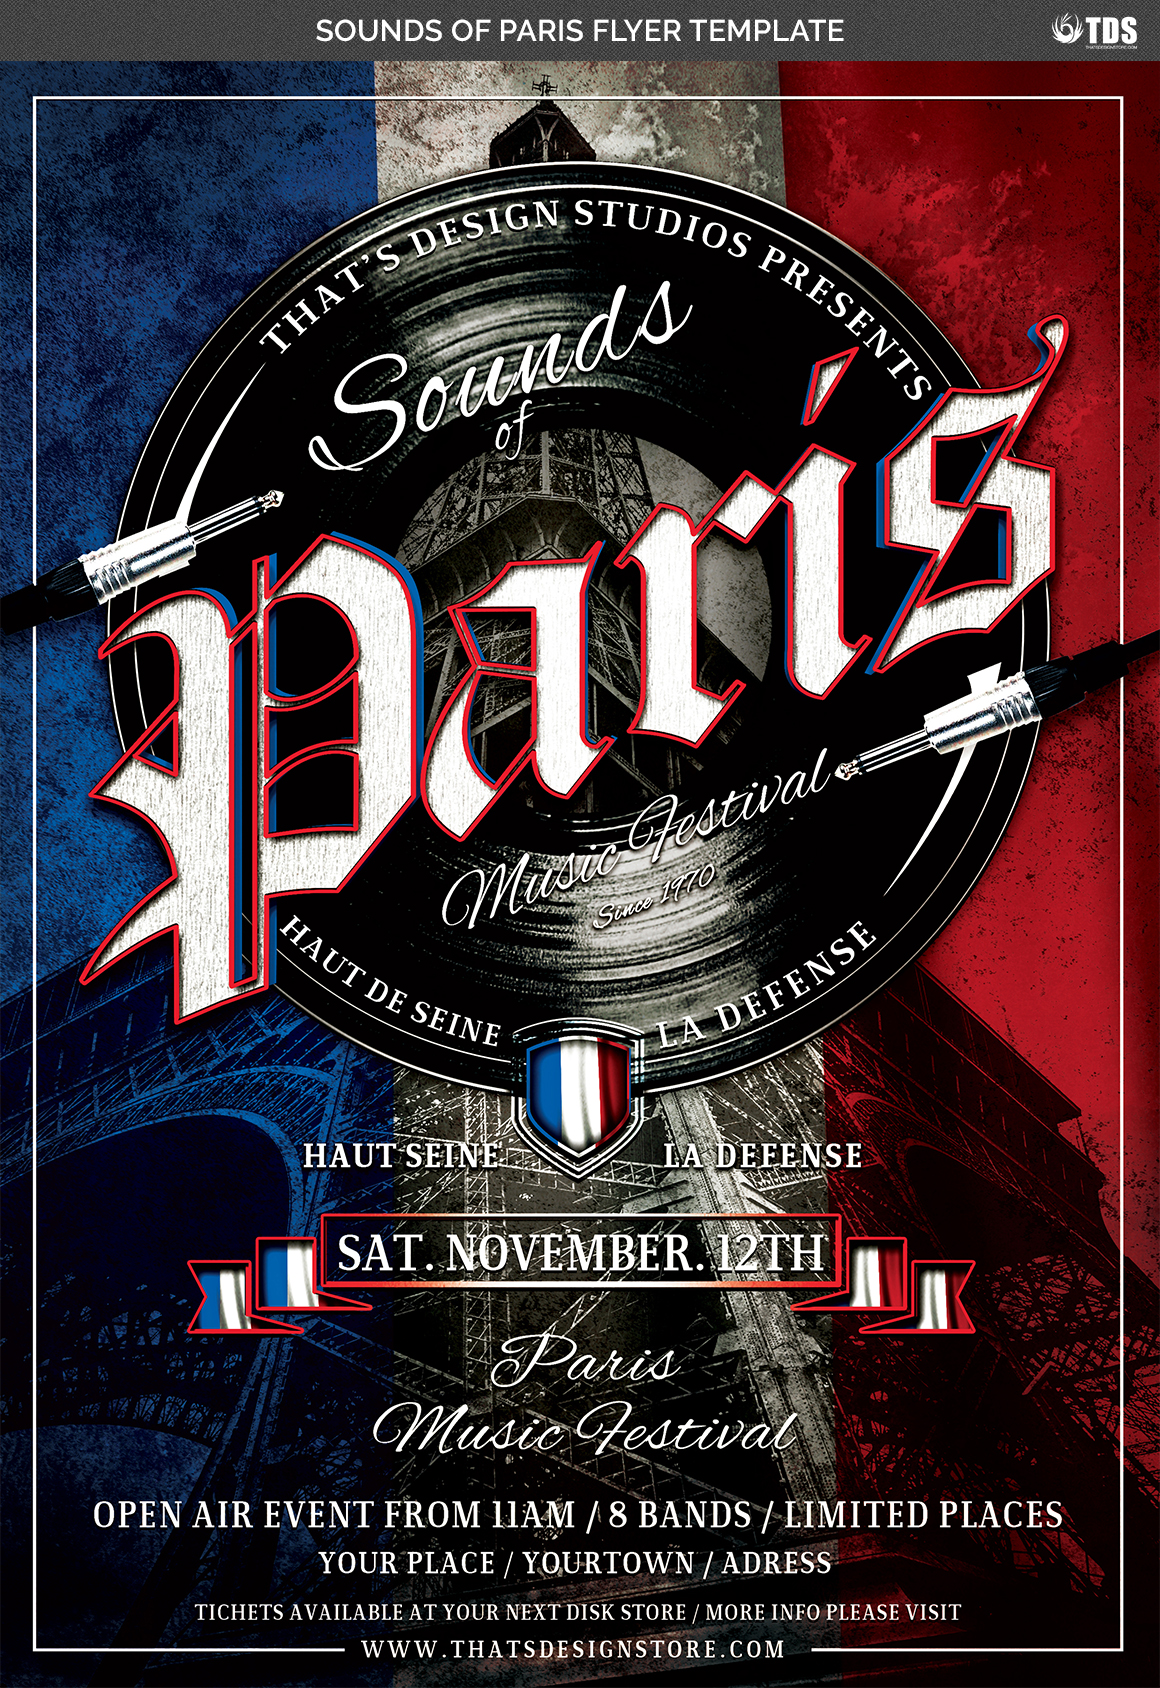 Sounds of Paris Flyer Template example image 4